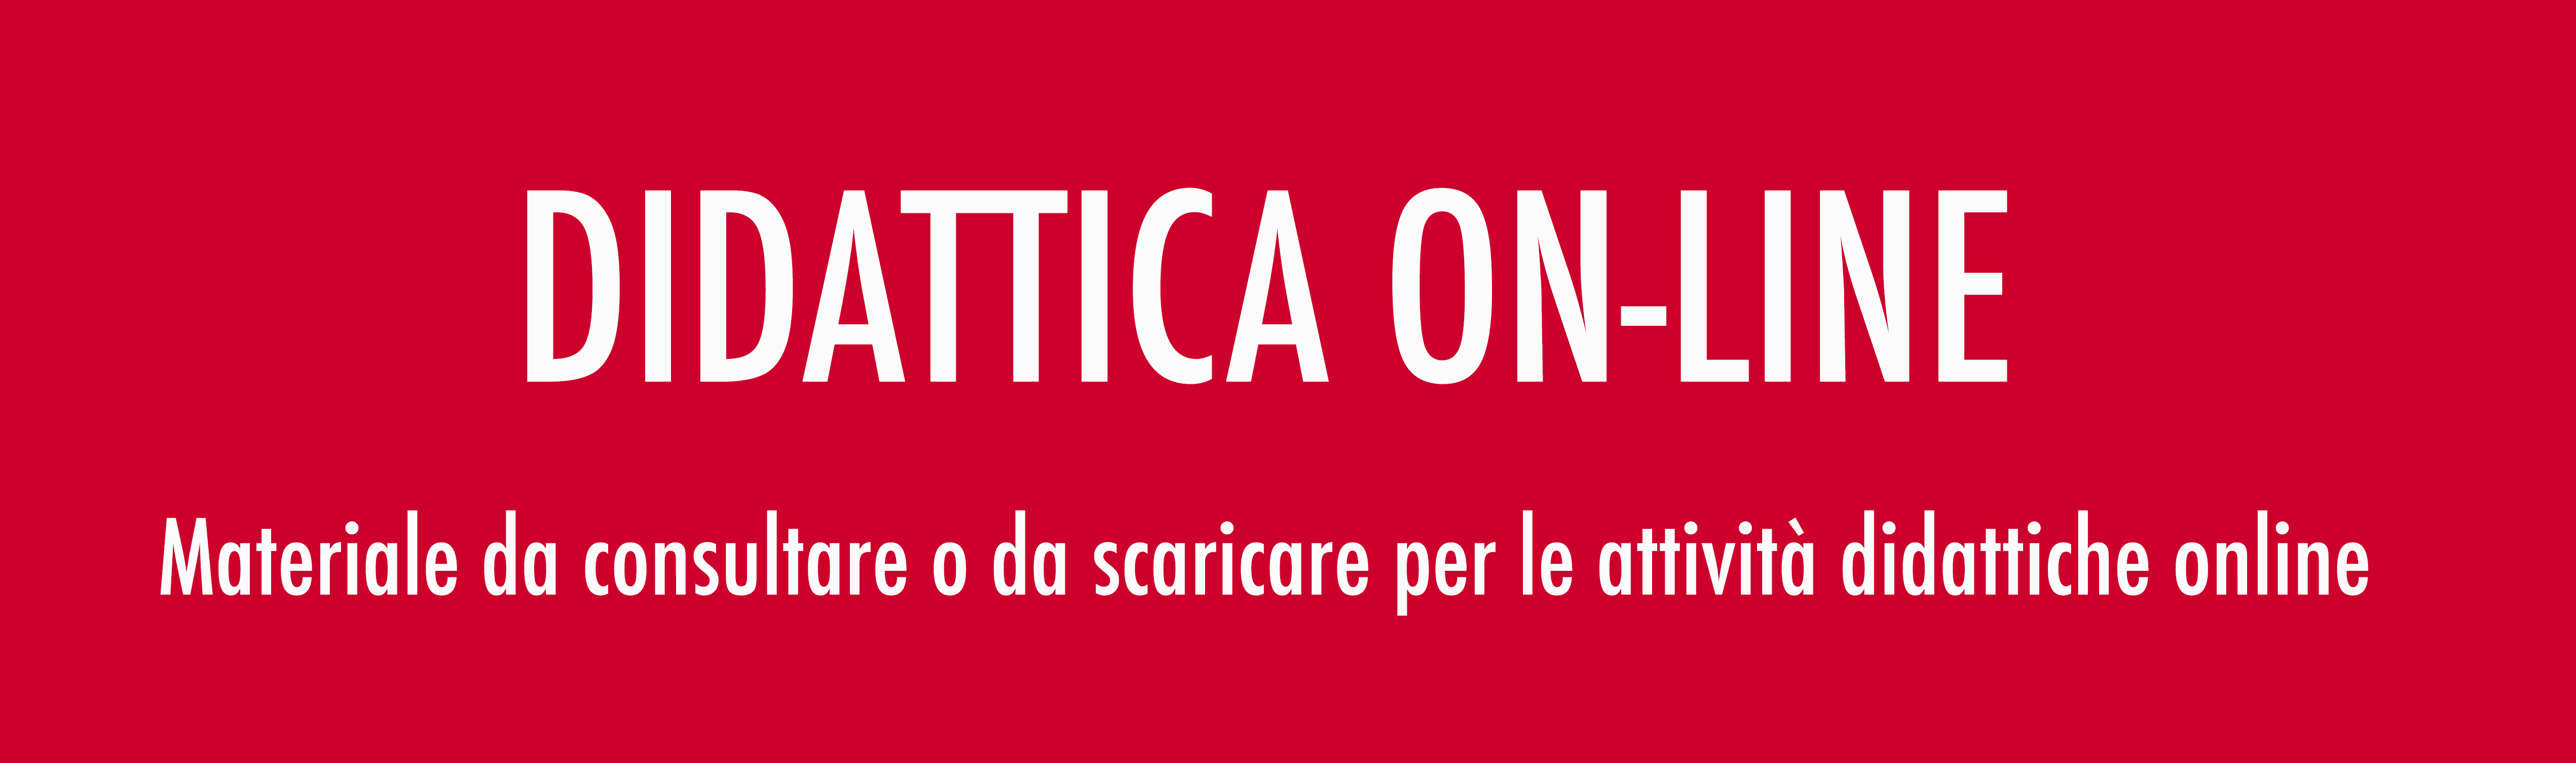 Didattica on-line